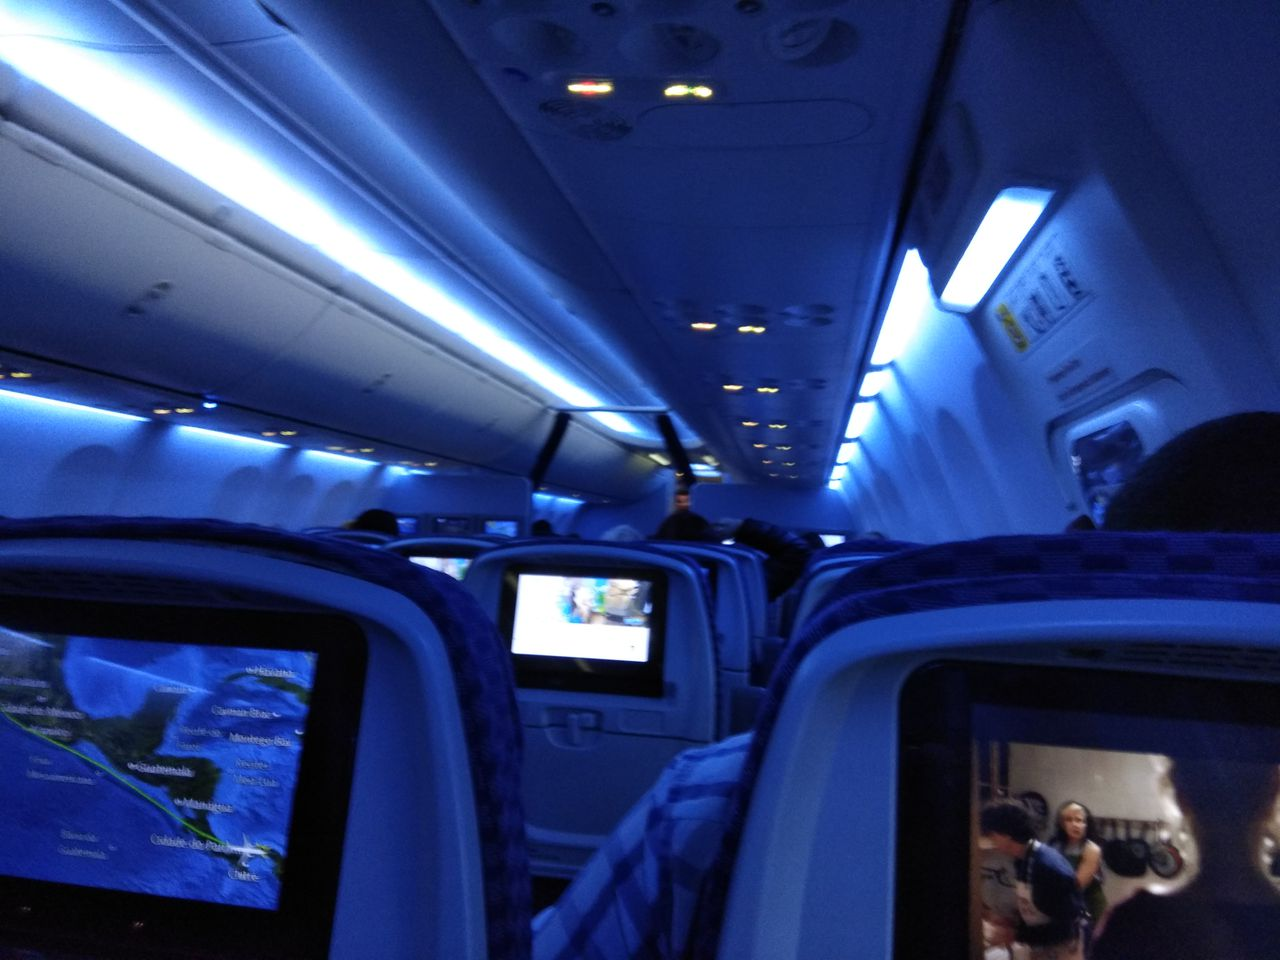 Review Of Copa Airlines Flight From Puerto Vallarta To